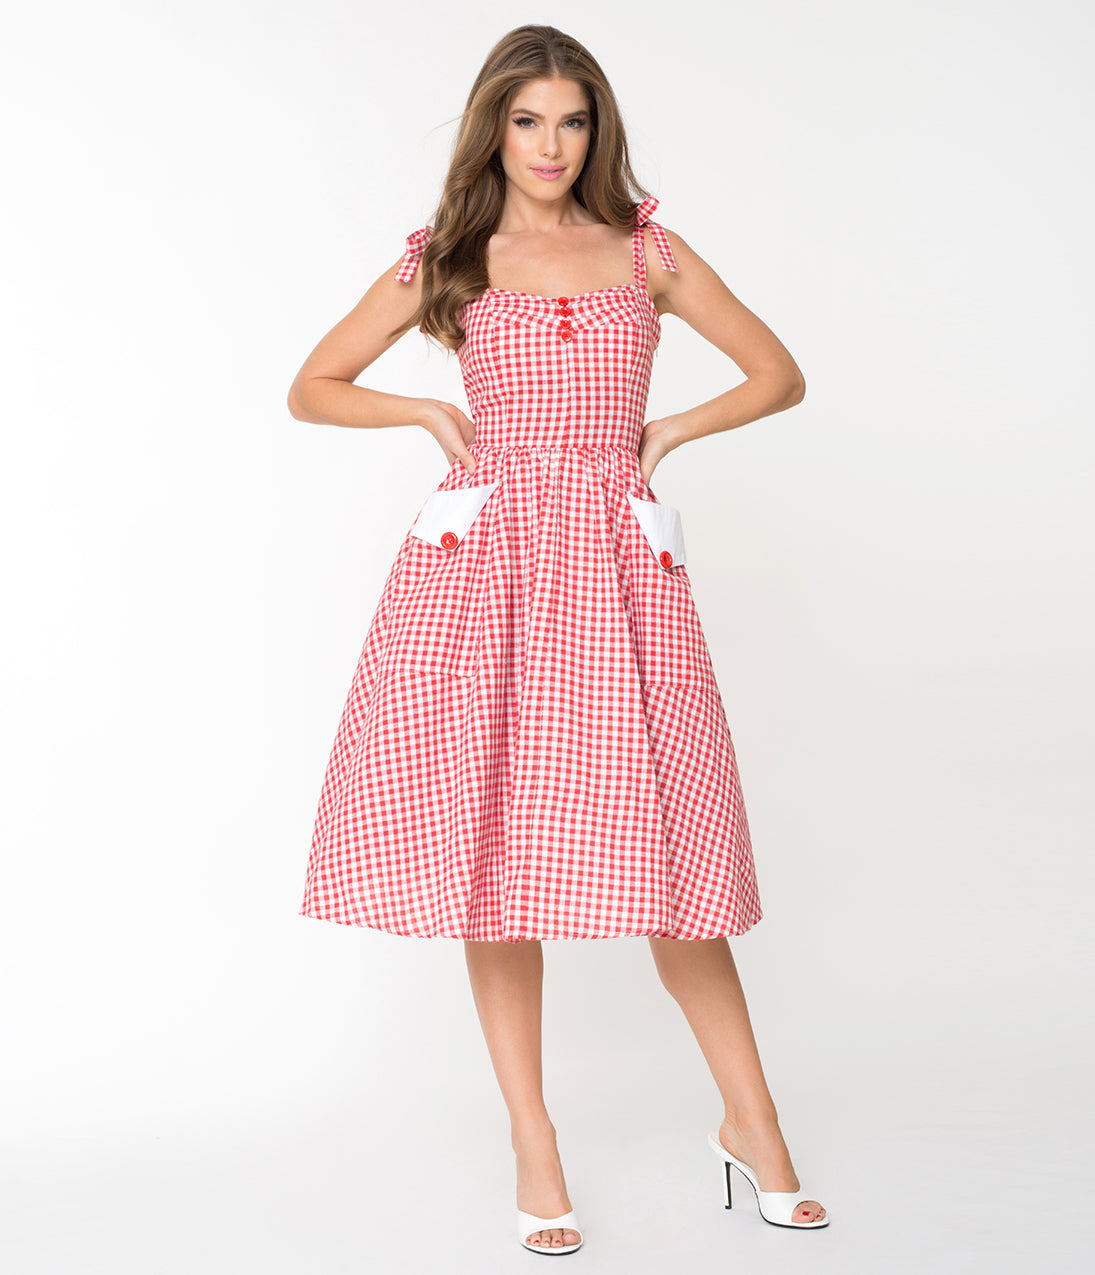 Pin Up Dresses | Pin Up Clothing Red  White Gingham Retro Picnic Sundress $58.00 AT vintagedancer.com